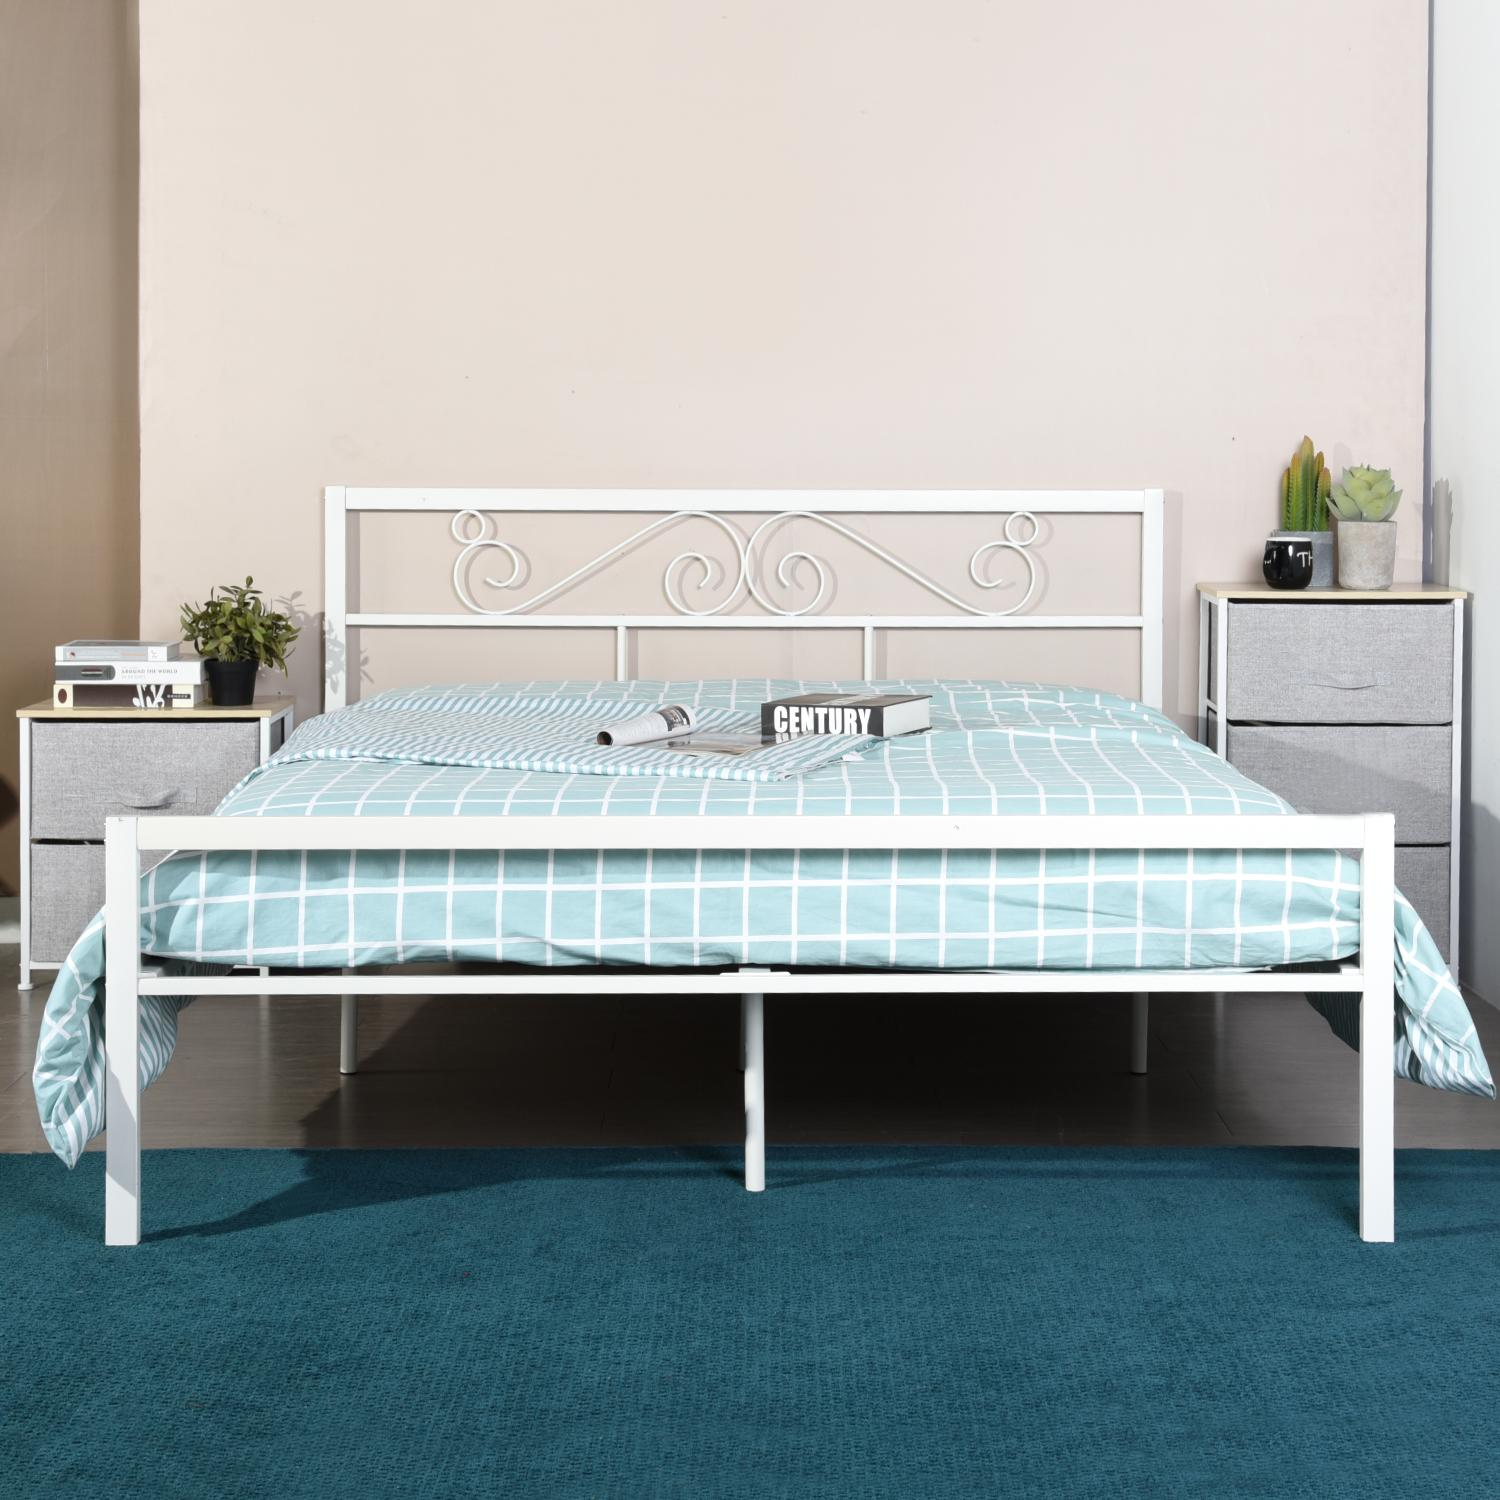 2020 Simple Metal Bed Frames King Twin Bed Frame Foundation Headboard Footboard Queen Size Bed Frame From Yechain 251 16 Dhgate Com